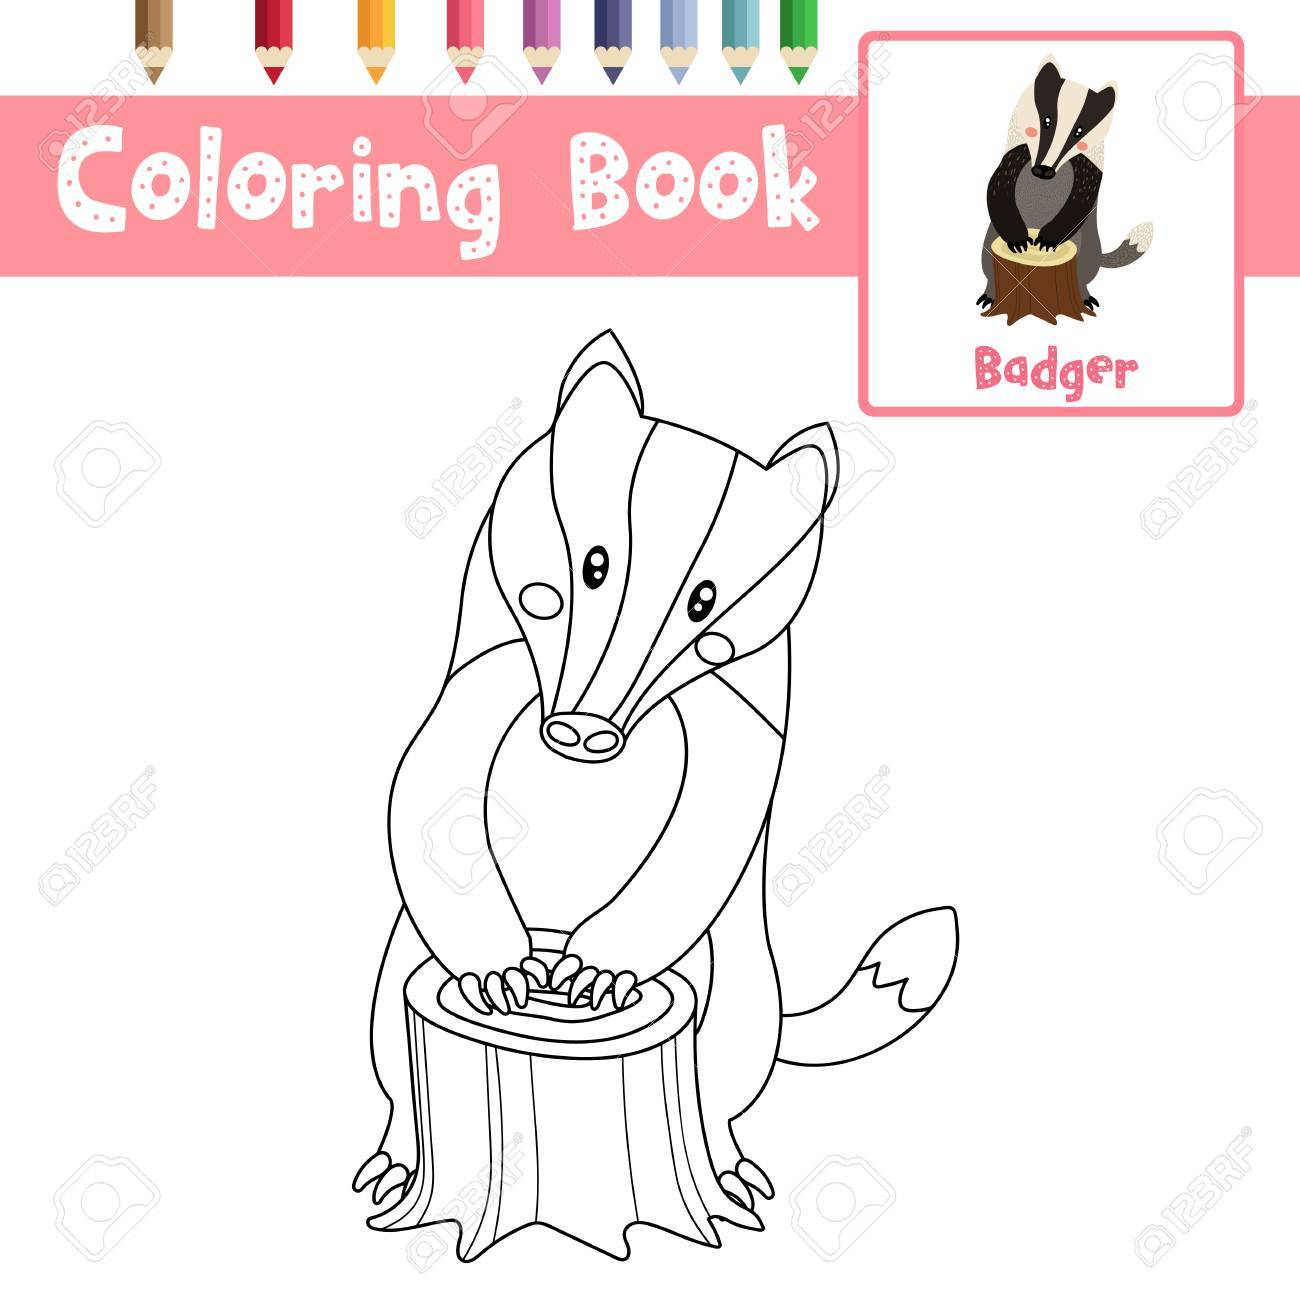 Coloring Page Of Badger Animals For Preschool Kids Activity Educational  Worksheet. Vector Illustration. Stock